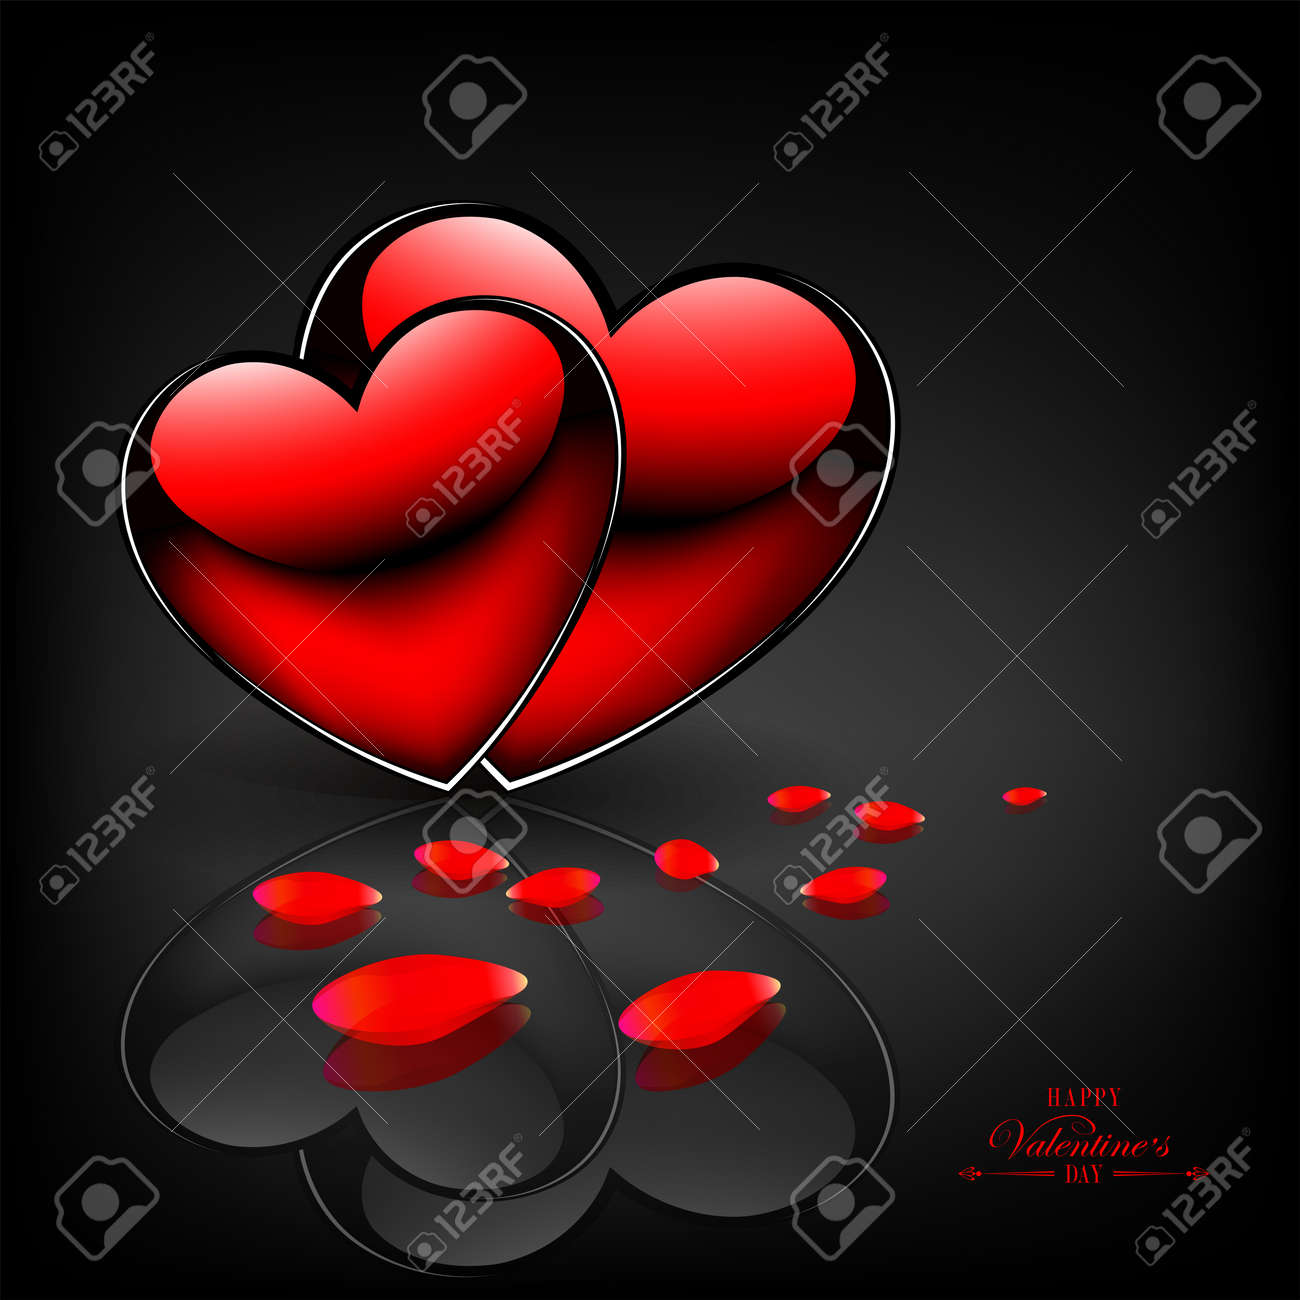 Two red hearts, rose petals and with a mirror image